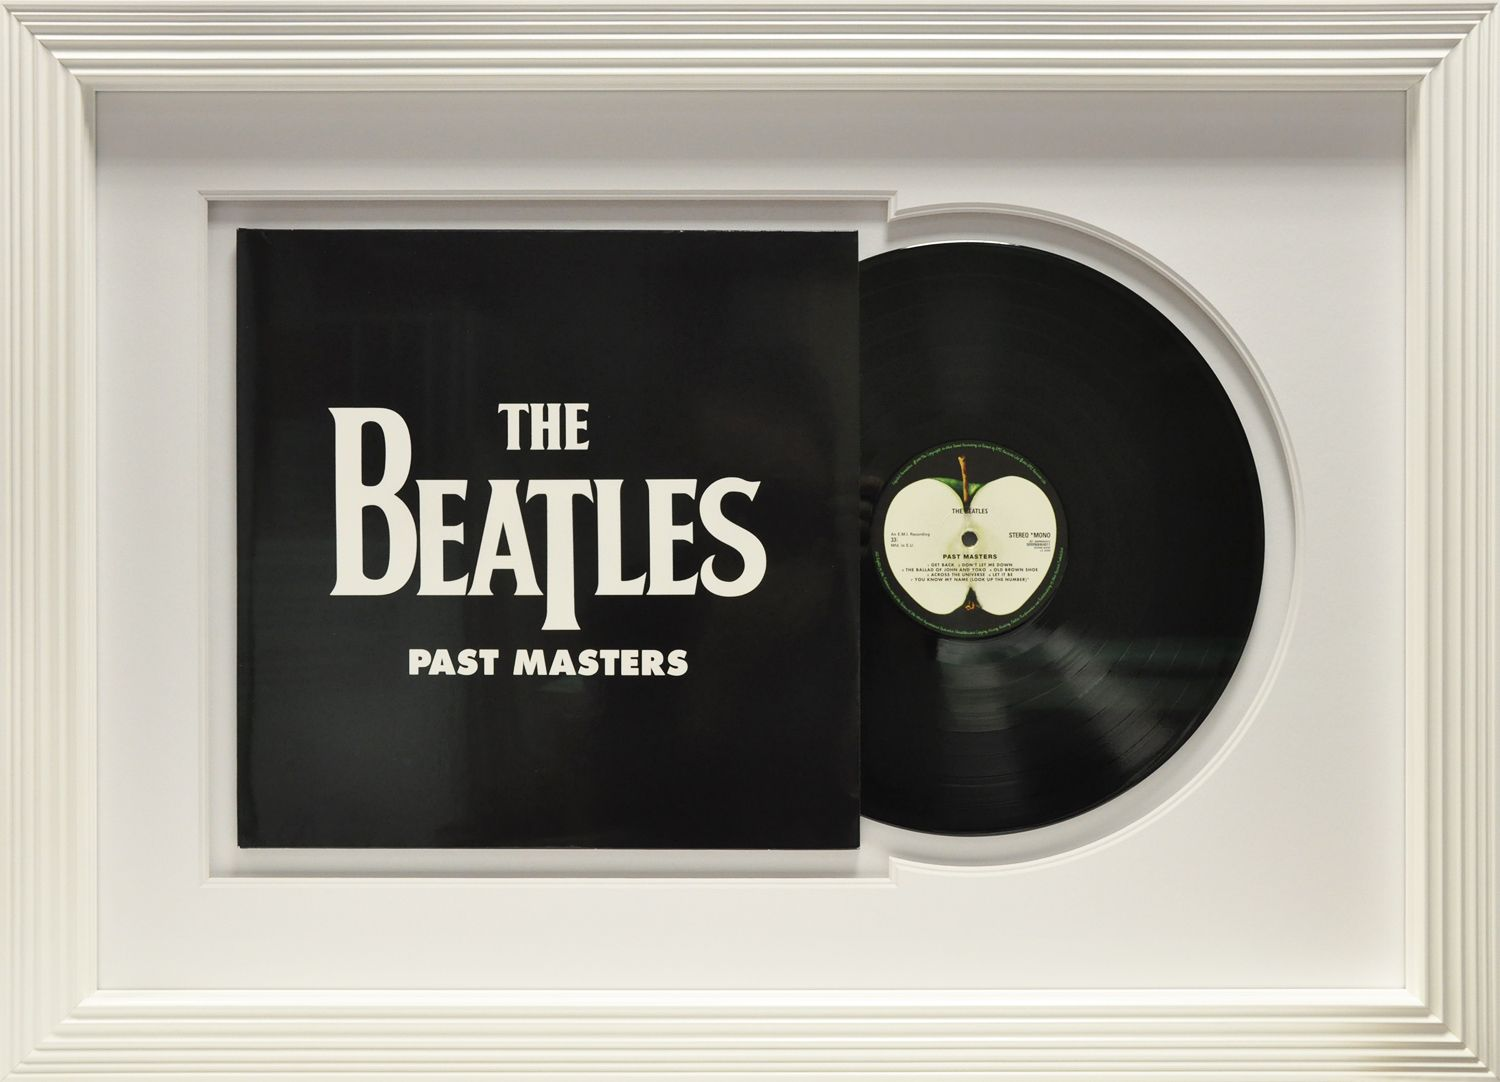 encadrement d 39 un vrai vinyl des beatles past masters encadrement collection pierre cardin. Black Bedroom Furniture Sets. Home Design Ideas